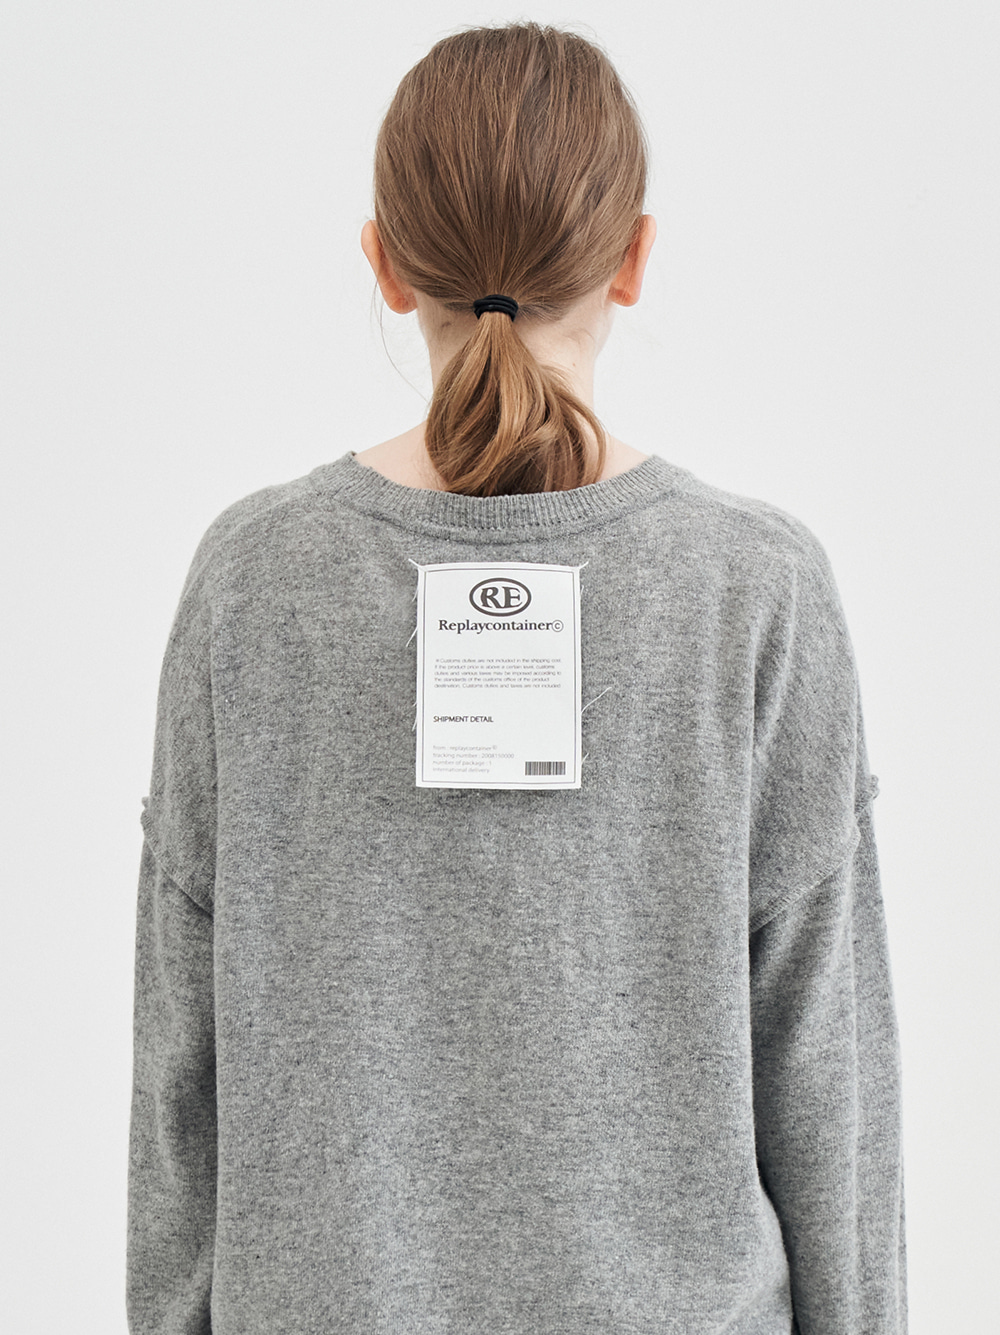 shipment overfit knit (gray) [10/1 delivery]